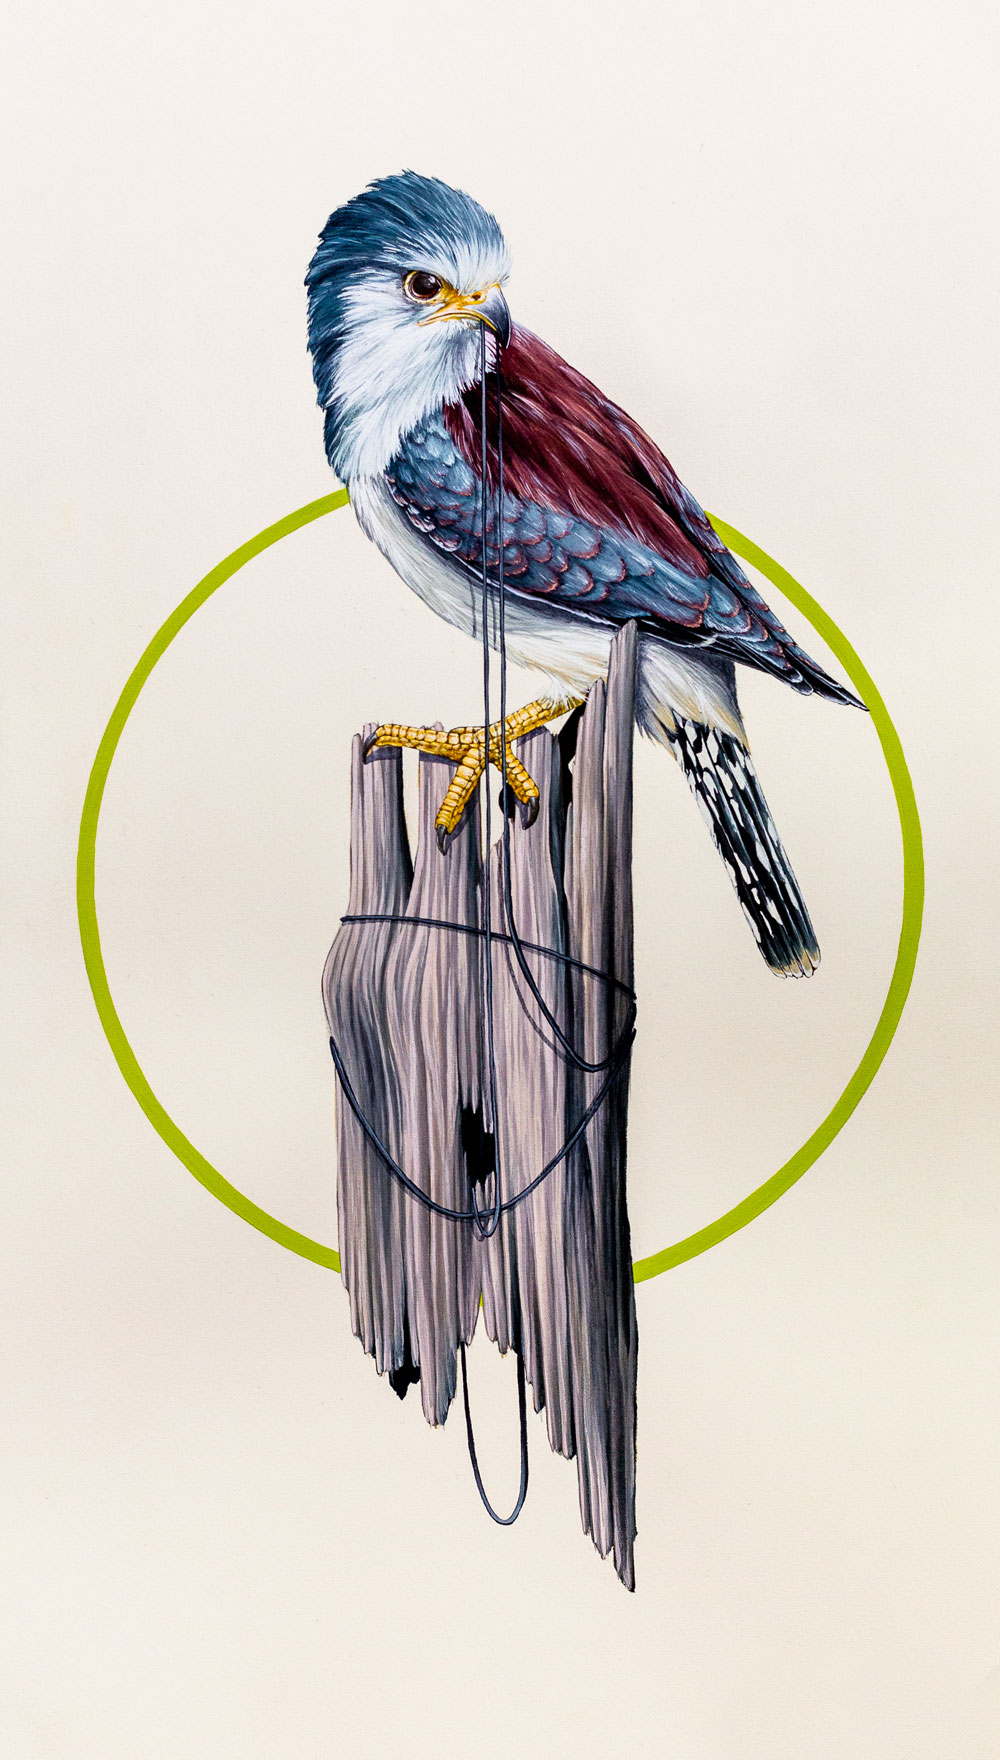 Pygmy falcon, Jurassic Cost, England. A part of the 'Discovery' series of works.